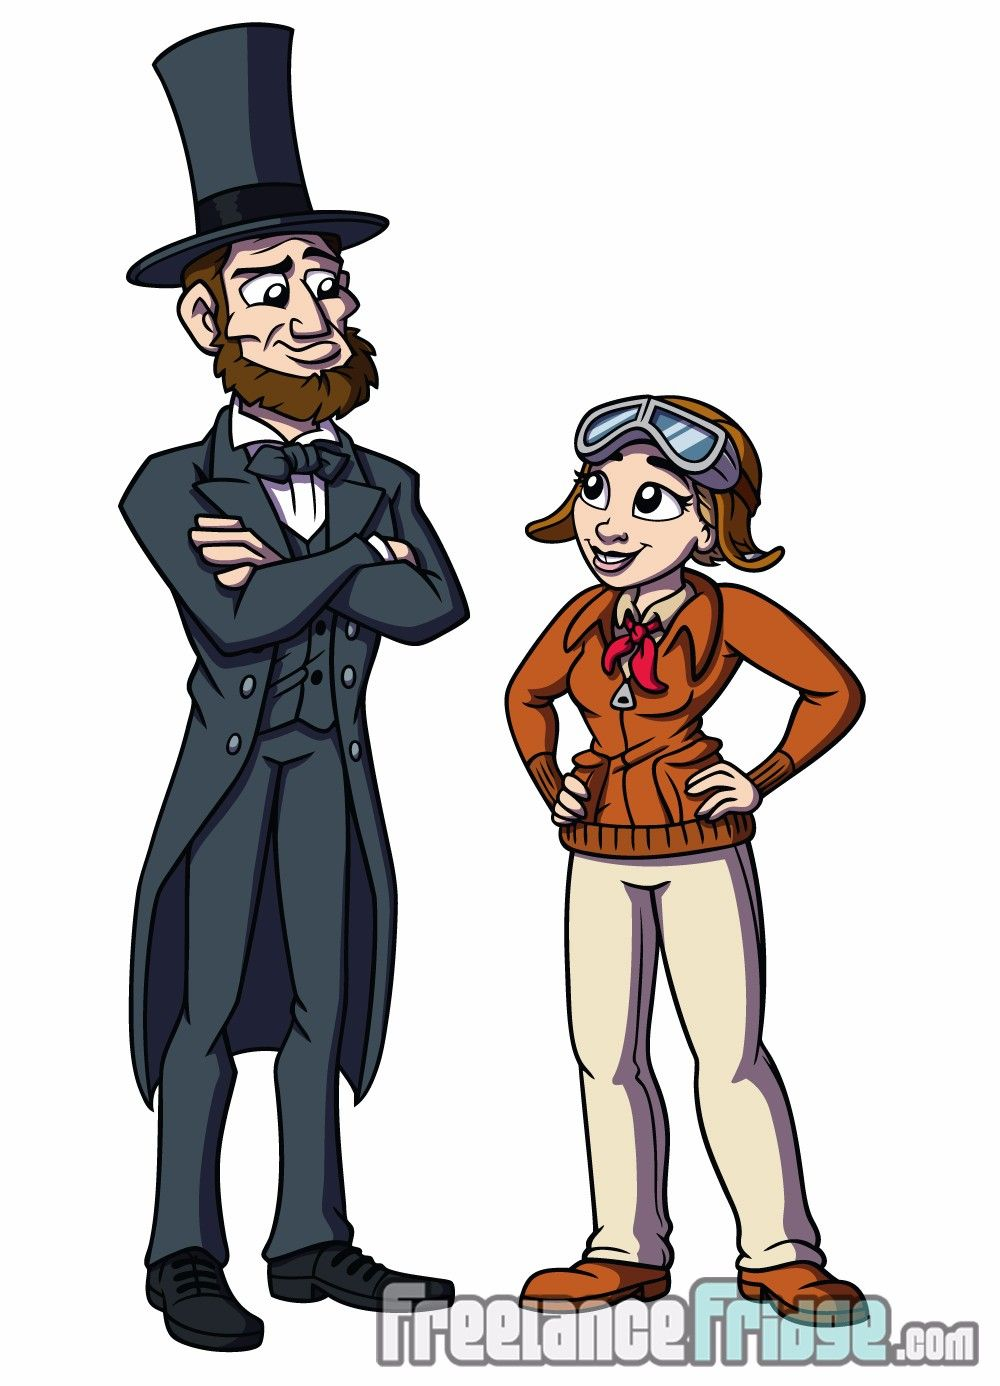 Abraham Lincoln Amelia Earhart Character Designs For Educational